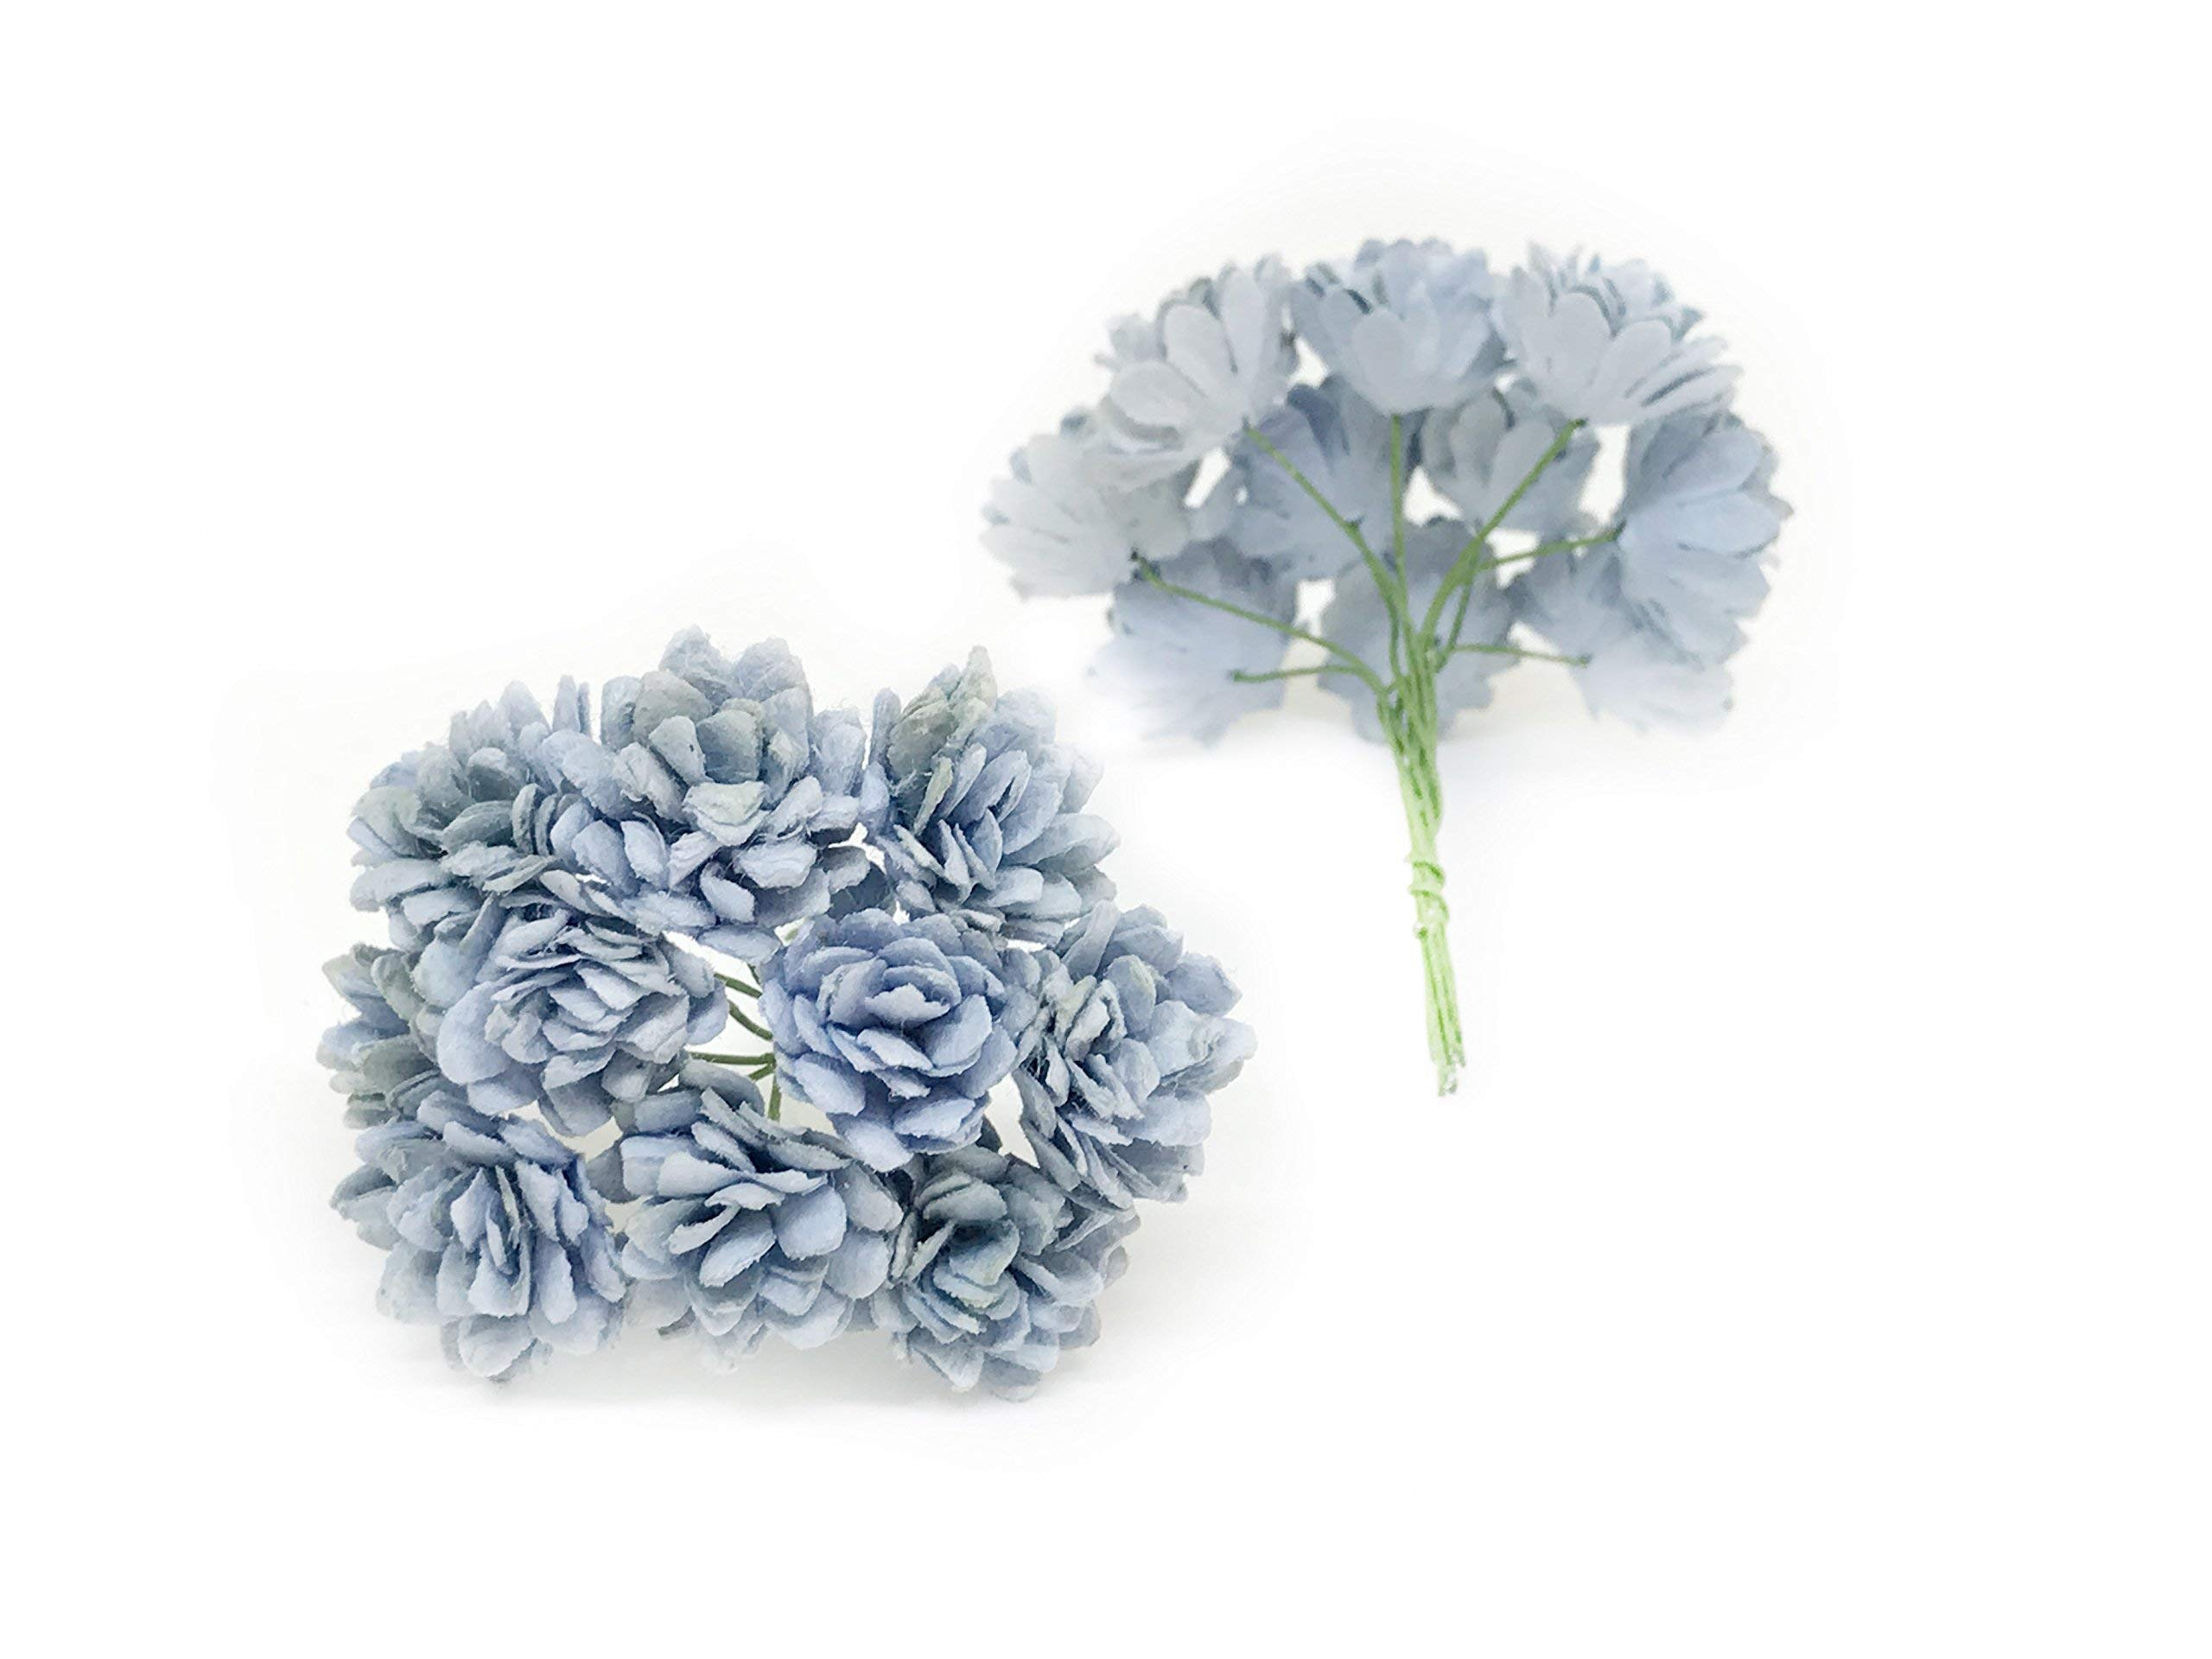 Savvi-Jewels-2cm-Blue-Mulberry-Paper-Flowers-with-Wire-Stems-Babys-Breath-Flowers-Mini-Paper-Flowers-Gypsophila-Wedding-Decoration-Craft-Flowers-50-Pieces